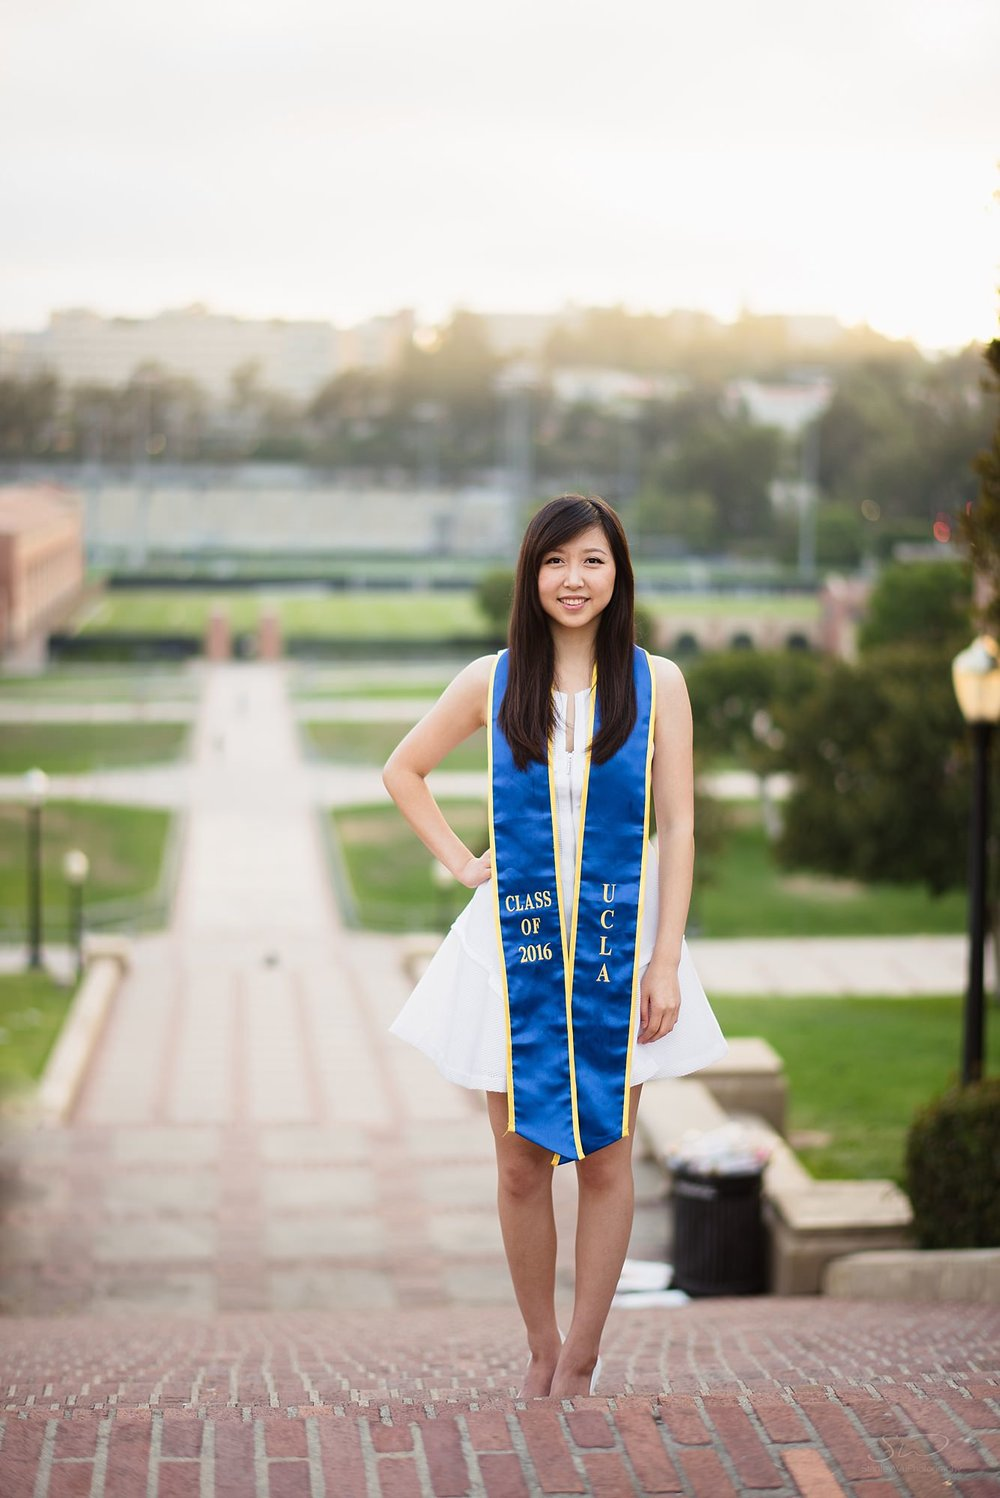 beautiful graduation senior portrait of posed girl smiling at the camera on janss steps at ucla in los angeles